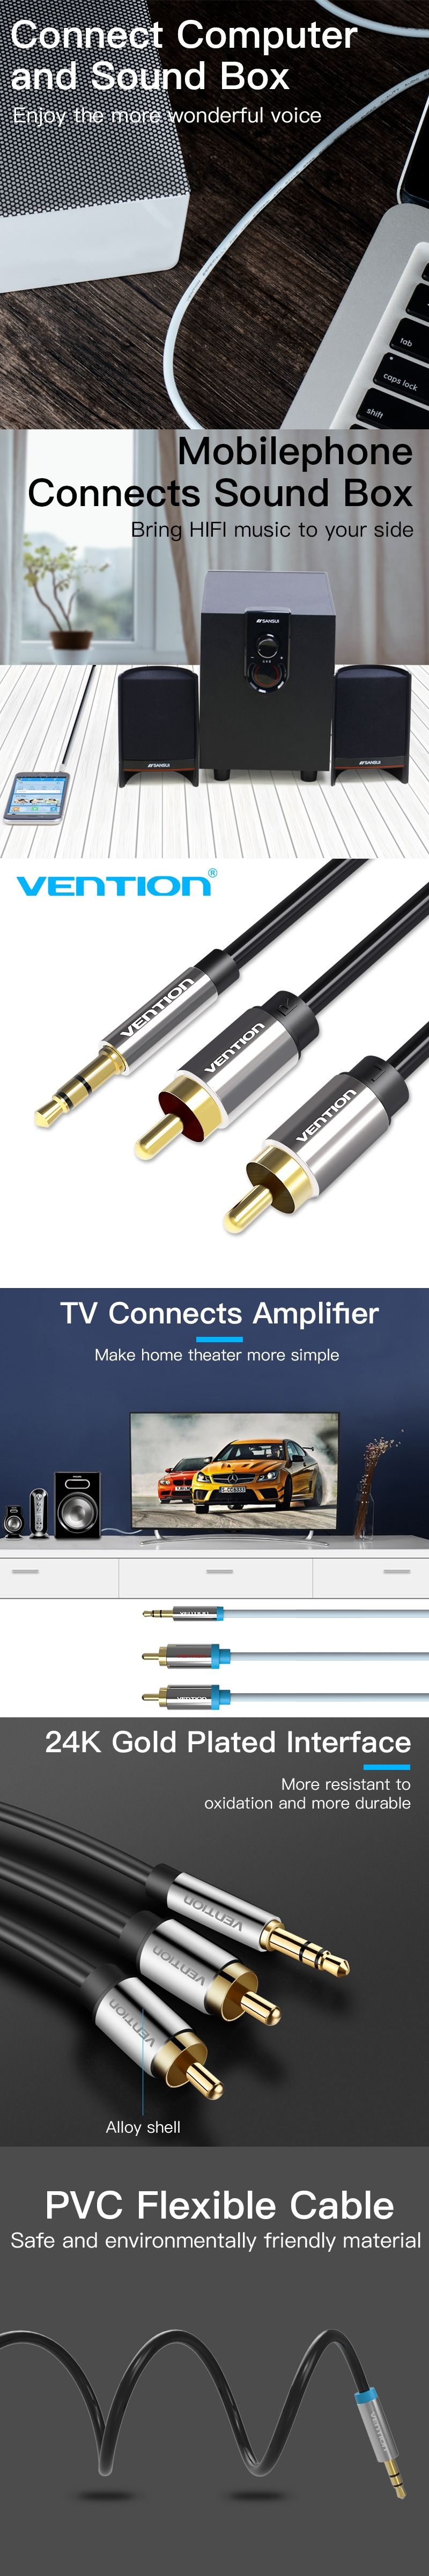 vention 3 5mm rca audio cable jack to 2 rca aux cable for edifer home theater [ 800 x 4800 Pixel ]